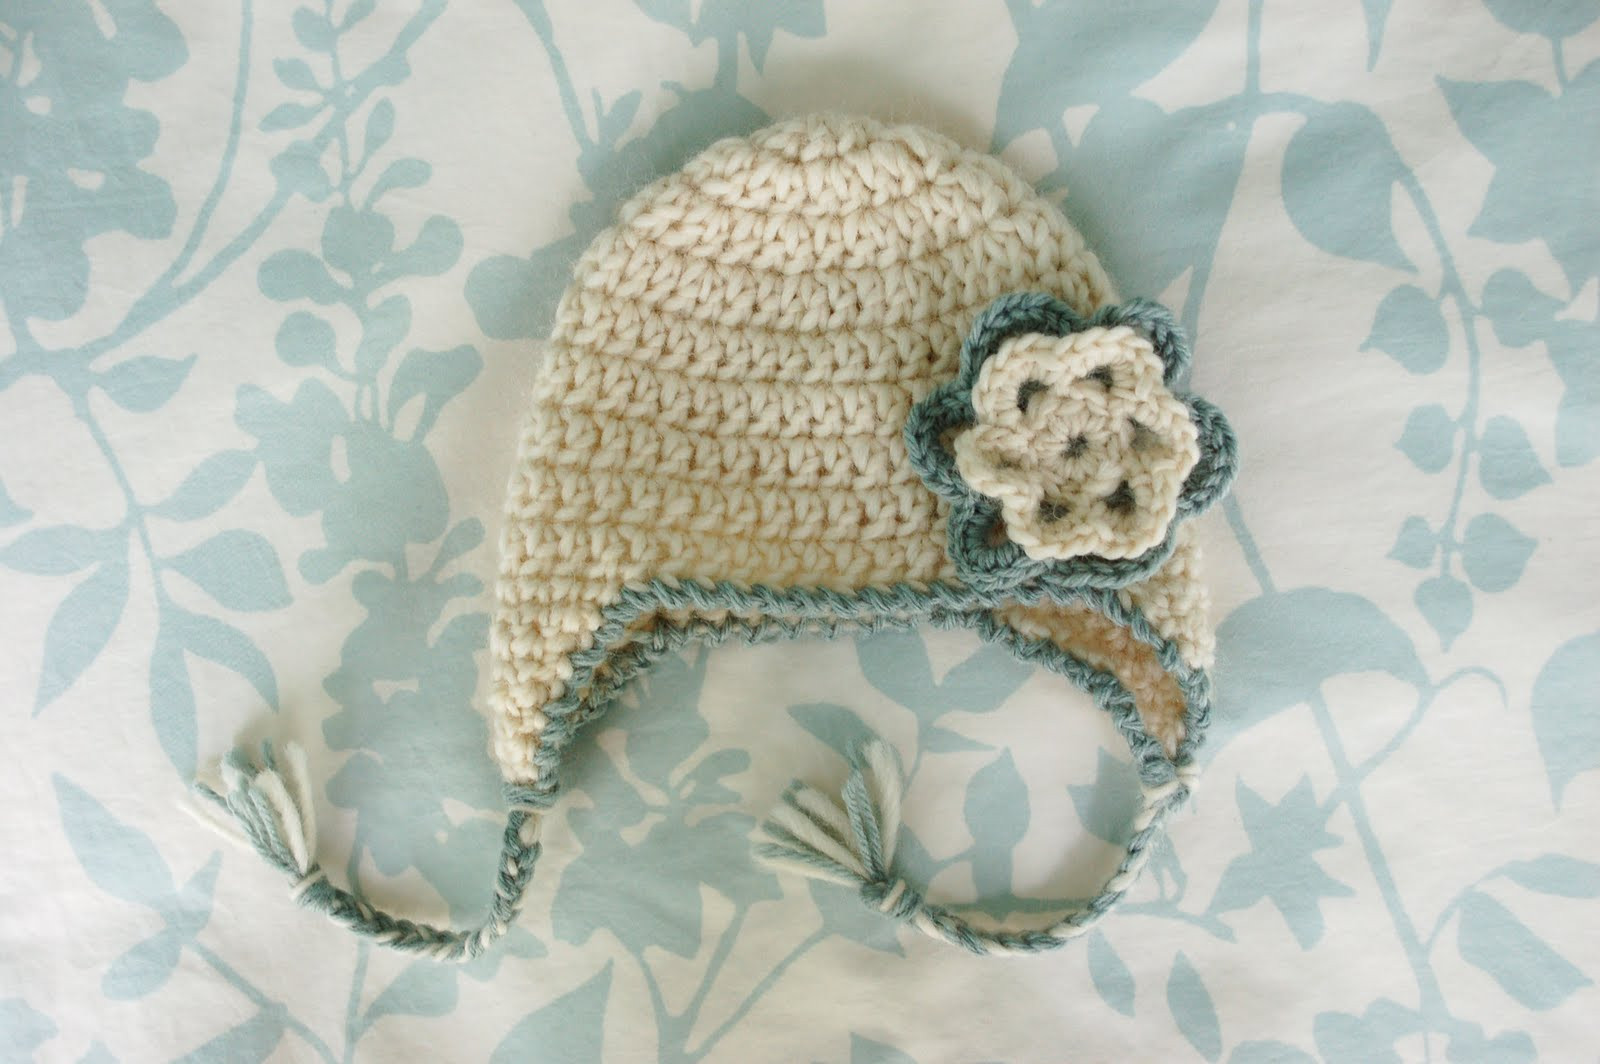 Lovely Alli Crafts Free Pattern Baby Earflap Hat Newborn Crochet toddler Hat Pattern Of Delightful 40 Ideas Crochet toddler Hat Pattern